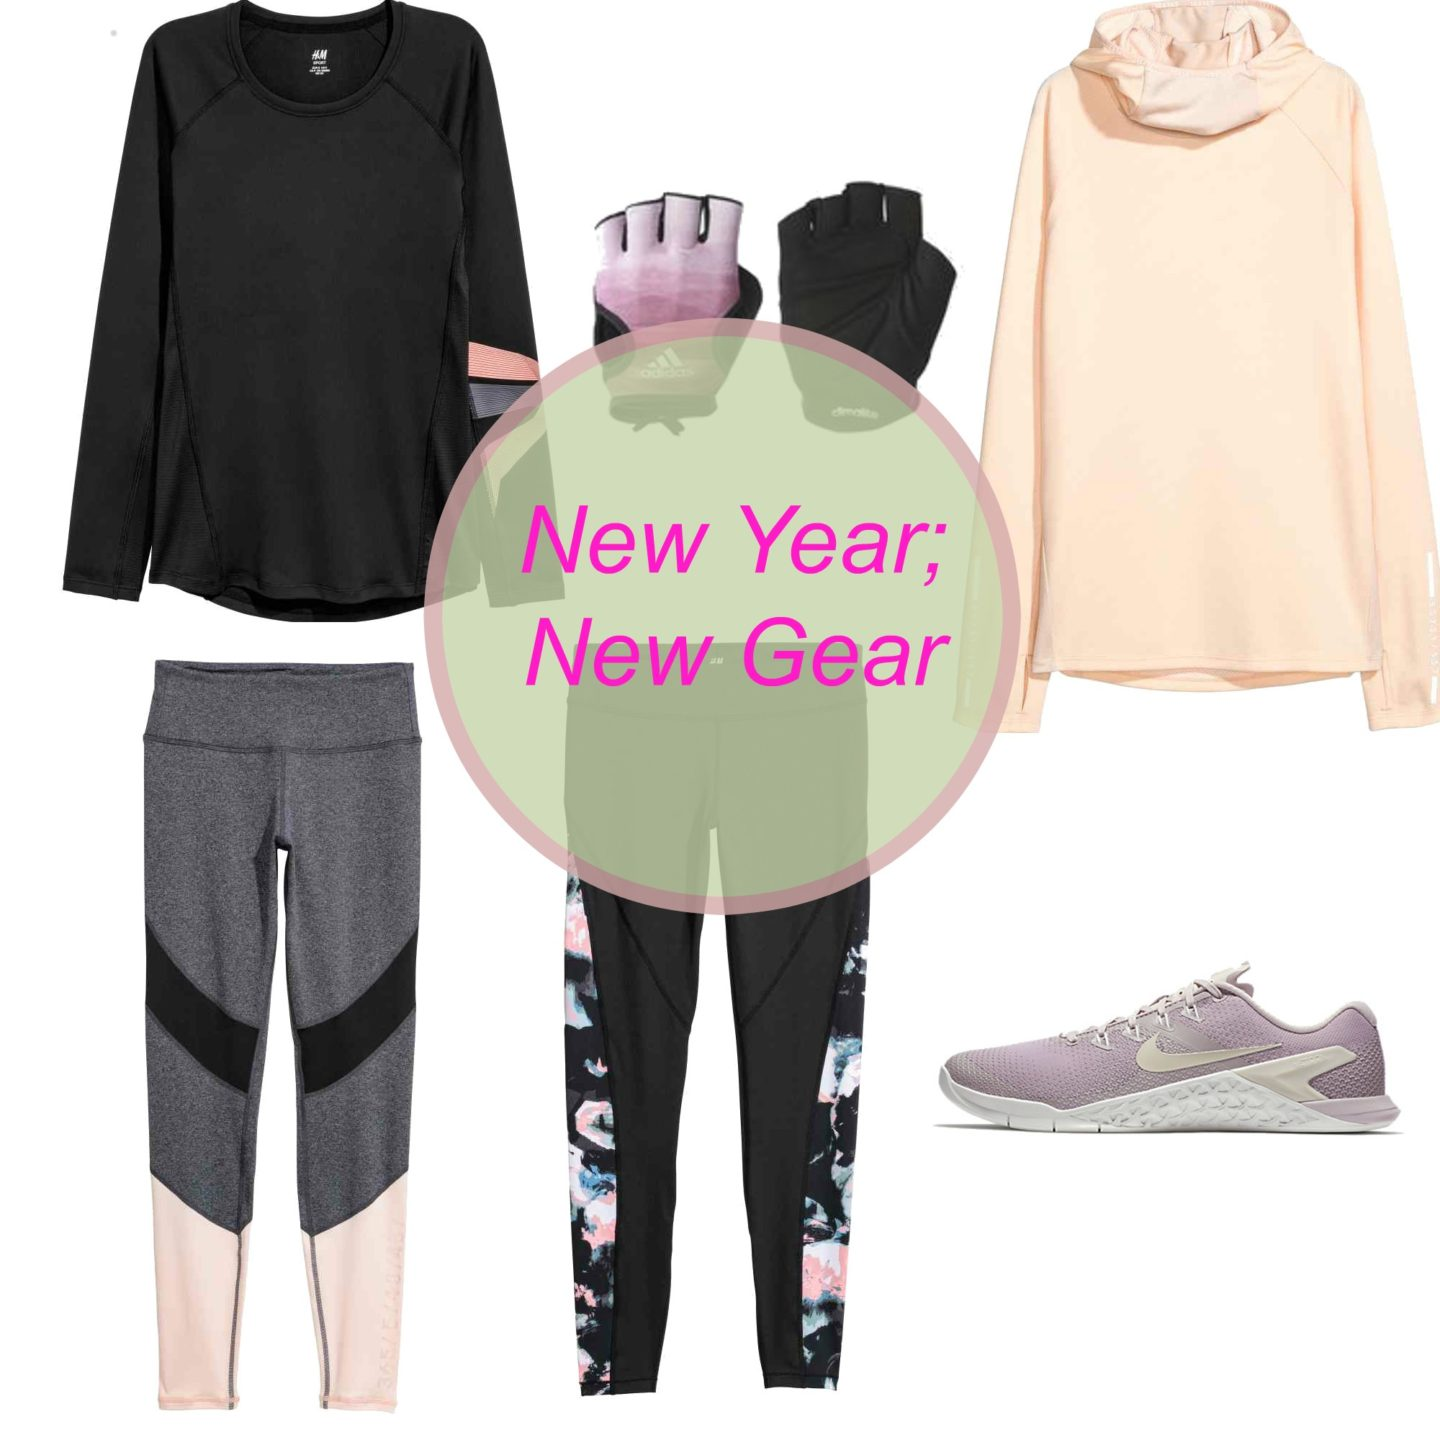 Workout Gear, Fitness, Pastels, Nike, Asics, Adidas, HM, H and M, Emergingstyles, New Year New You, Women's trainers, be active, be fit, 2018 fitness goals, Irish Fashion Blogger